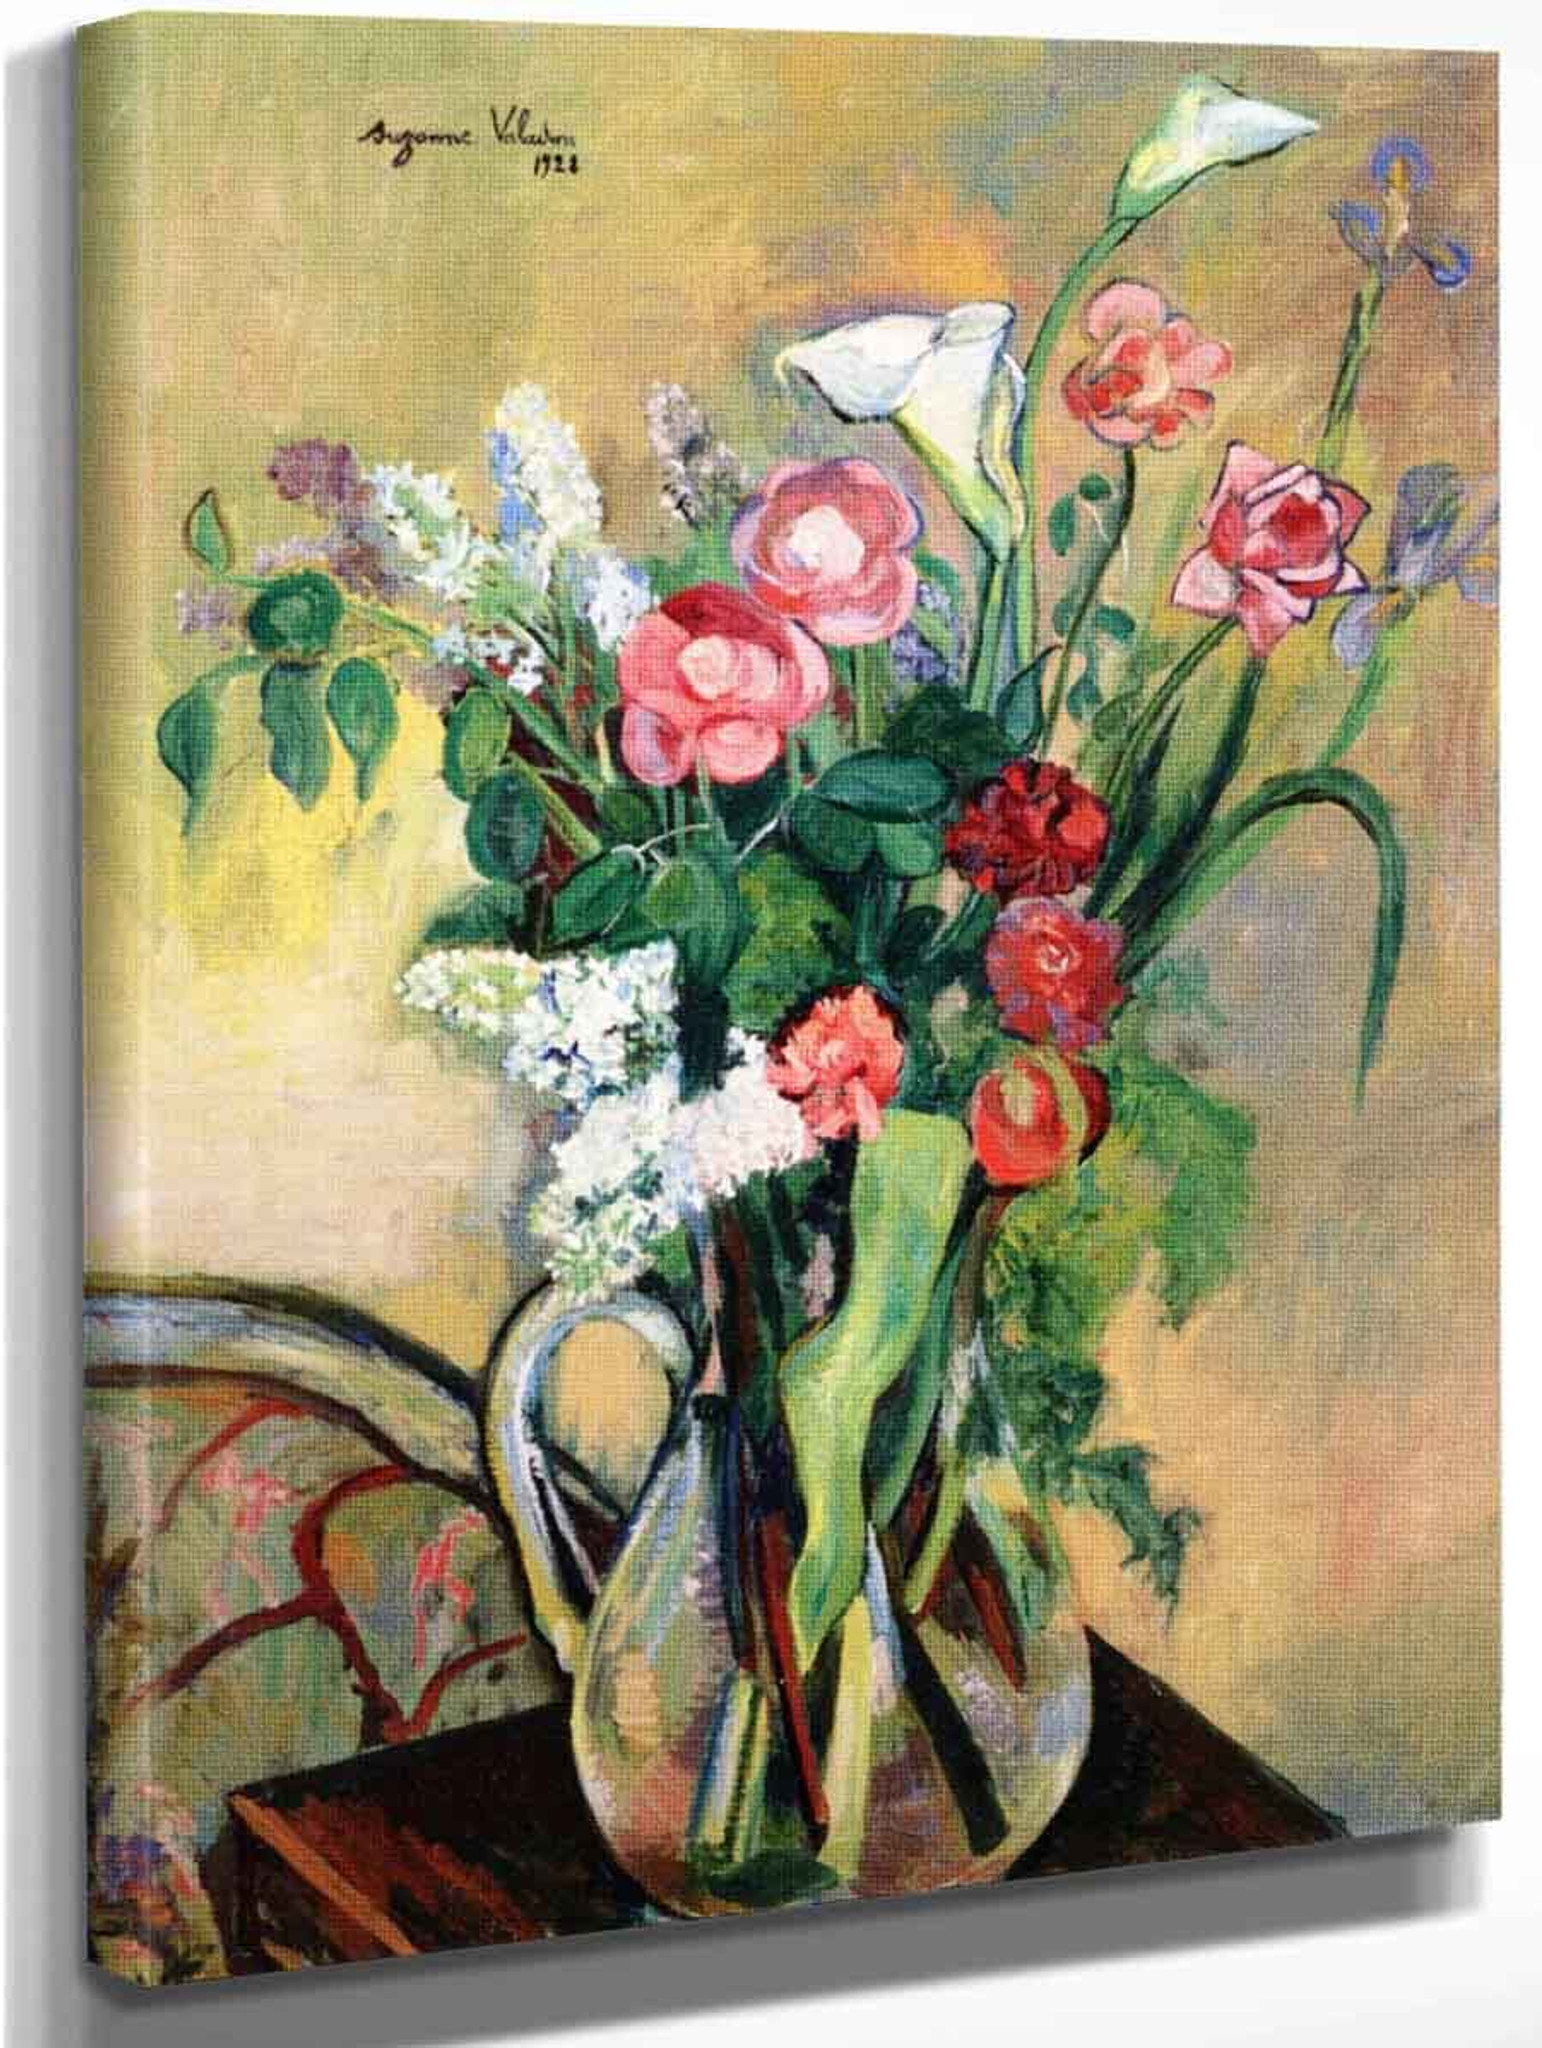 Flowers Roses Painting by Painter Suzanne Valadon 16X20 Fine Art Poster FREE SH